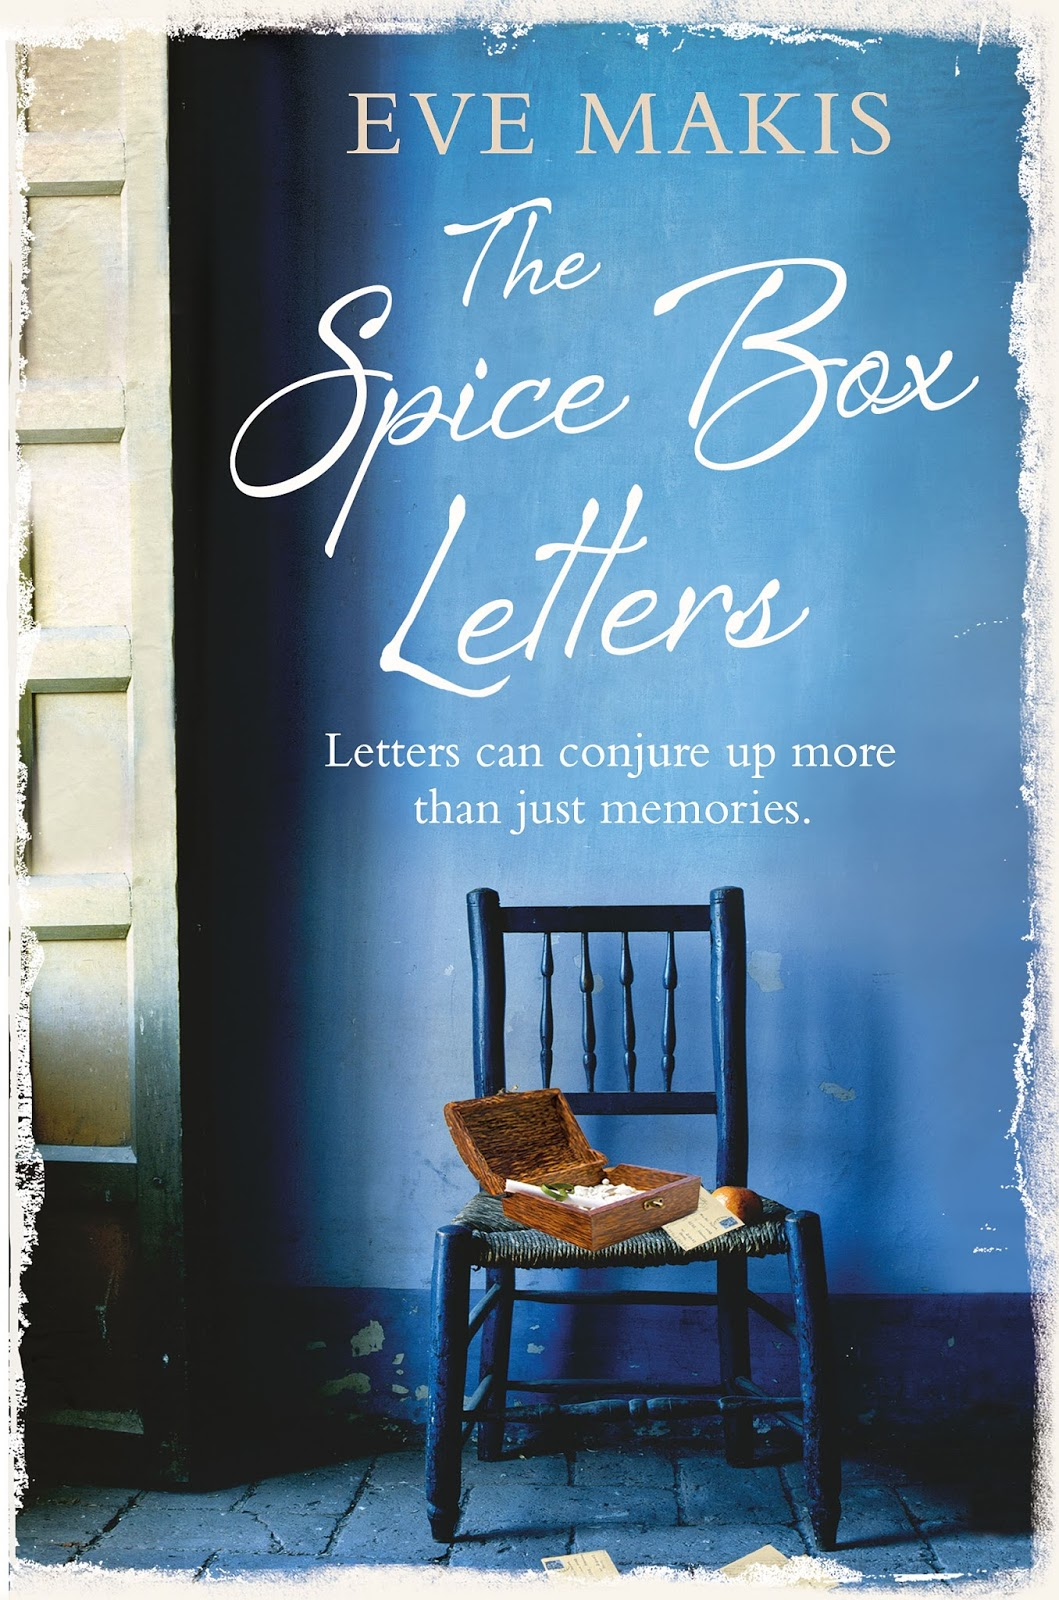 The Spice Box Letters: A Novel